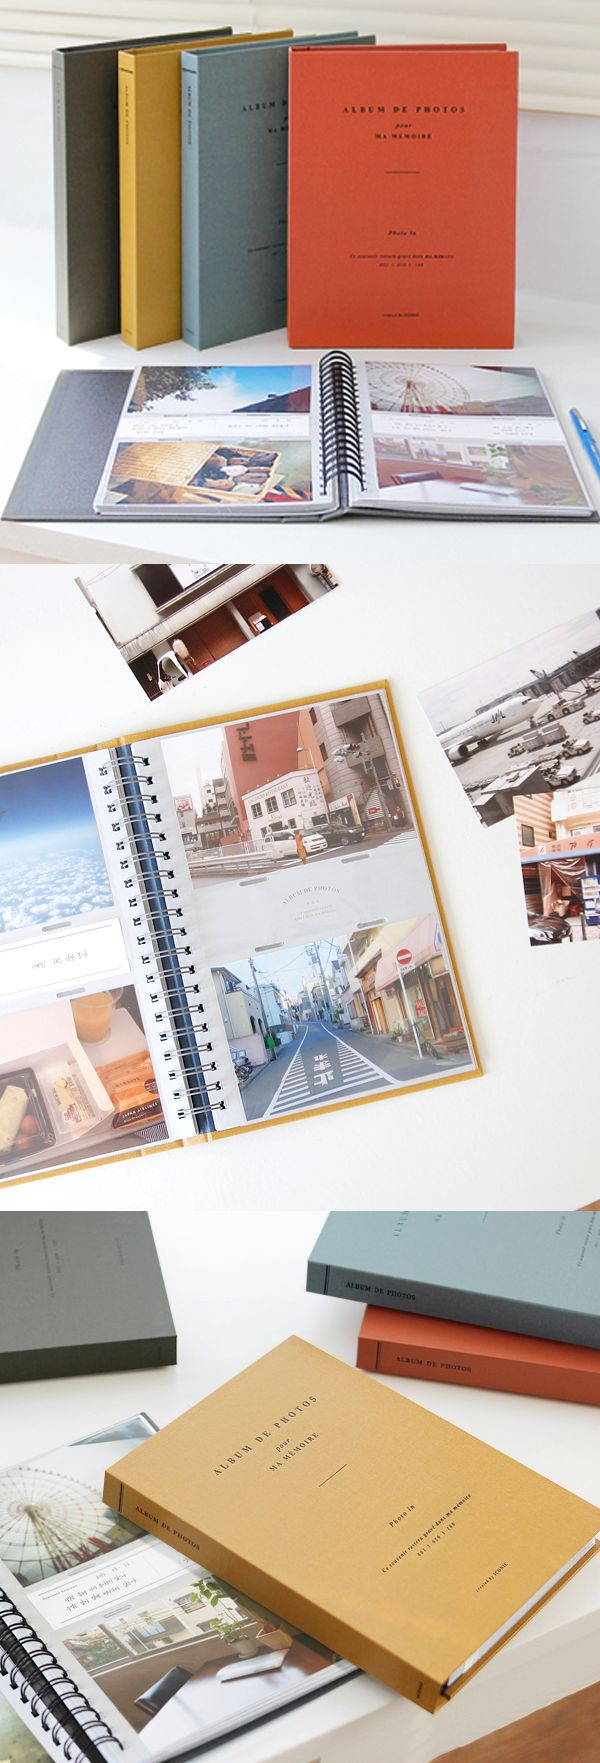 Cherish your valuable memories with the Spring 4x6 Photo Album! This well made album has a capacity of 100 4x6 photos. Plus, with the included memo paper, you can write short memos about the photos!